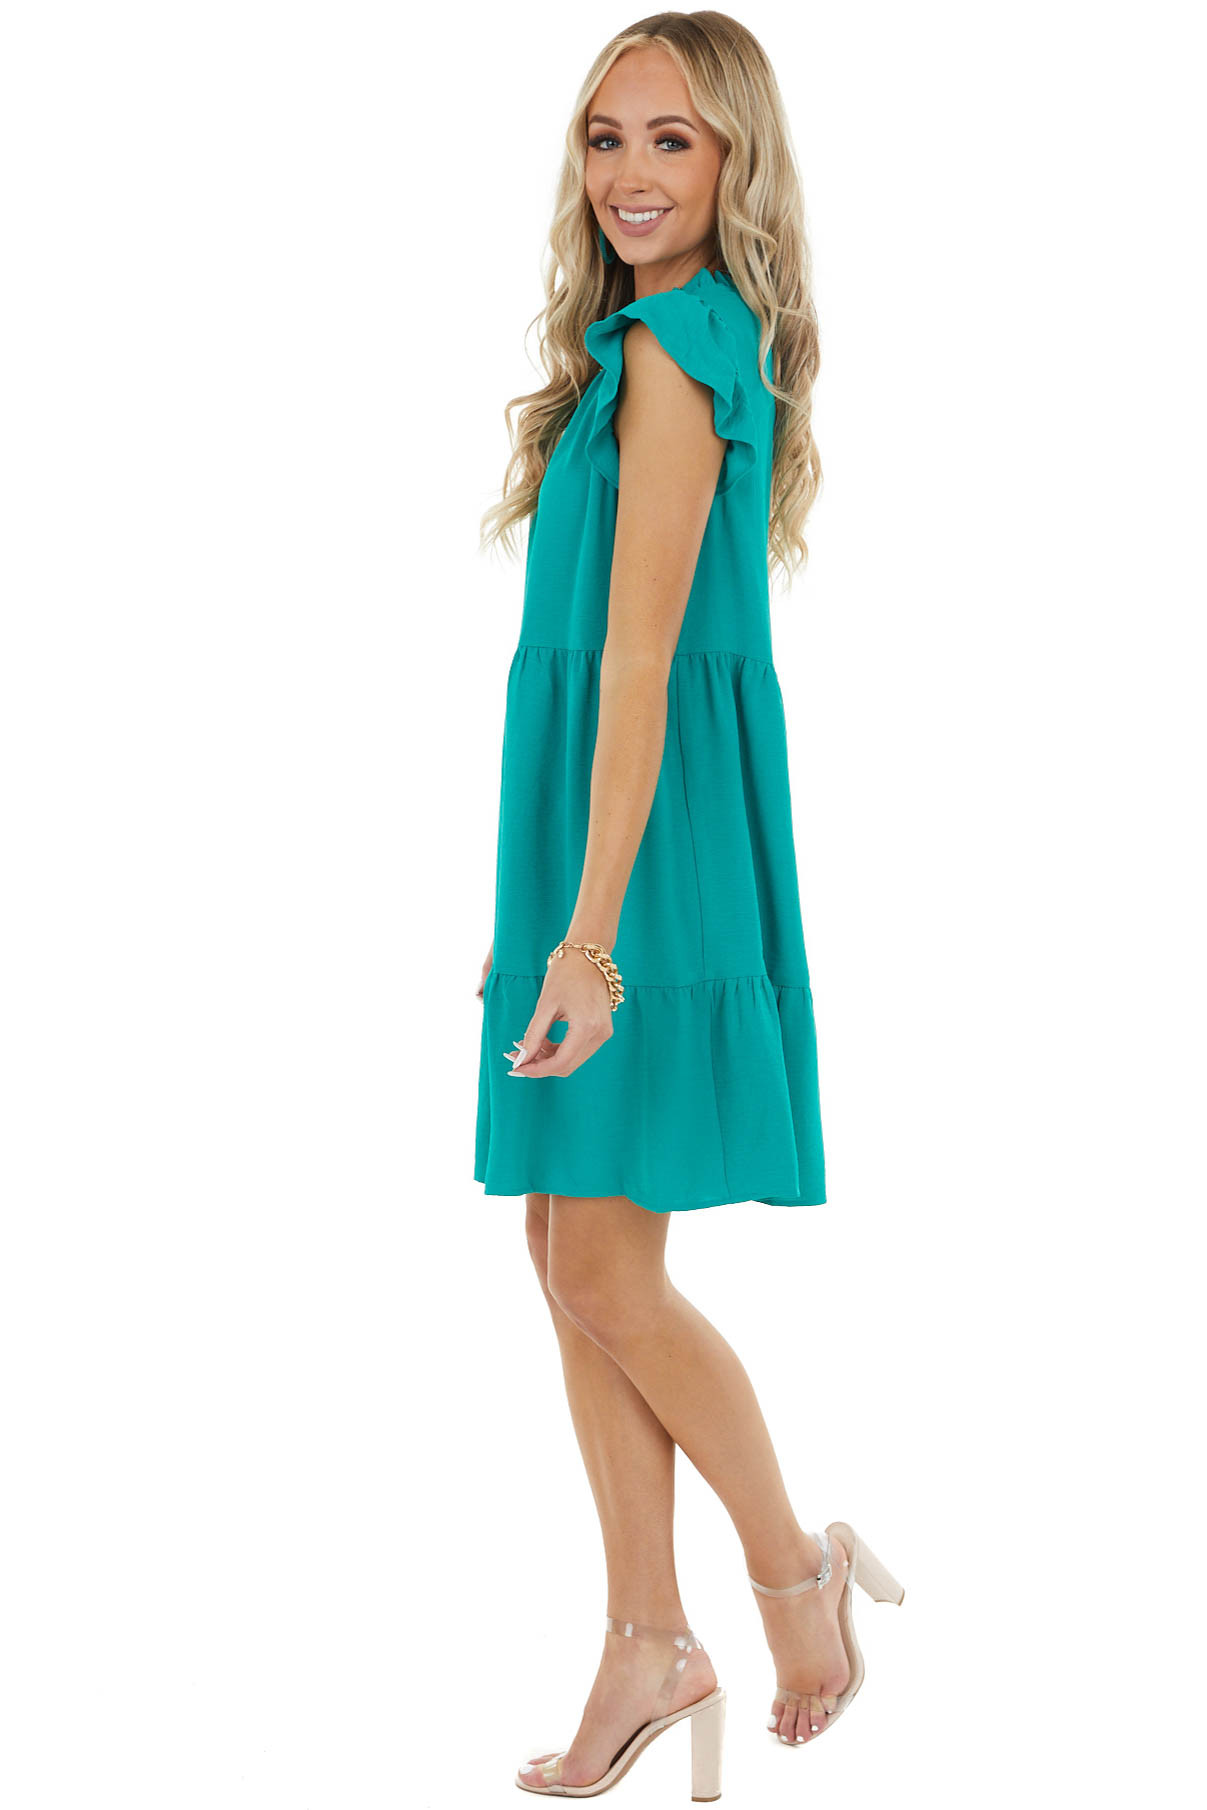 Jade Green Mock Neck Mini Tiered Dress with Ruffle Detailsv